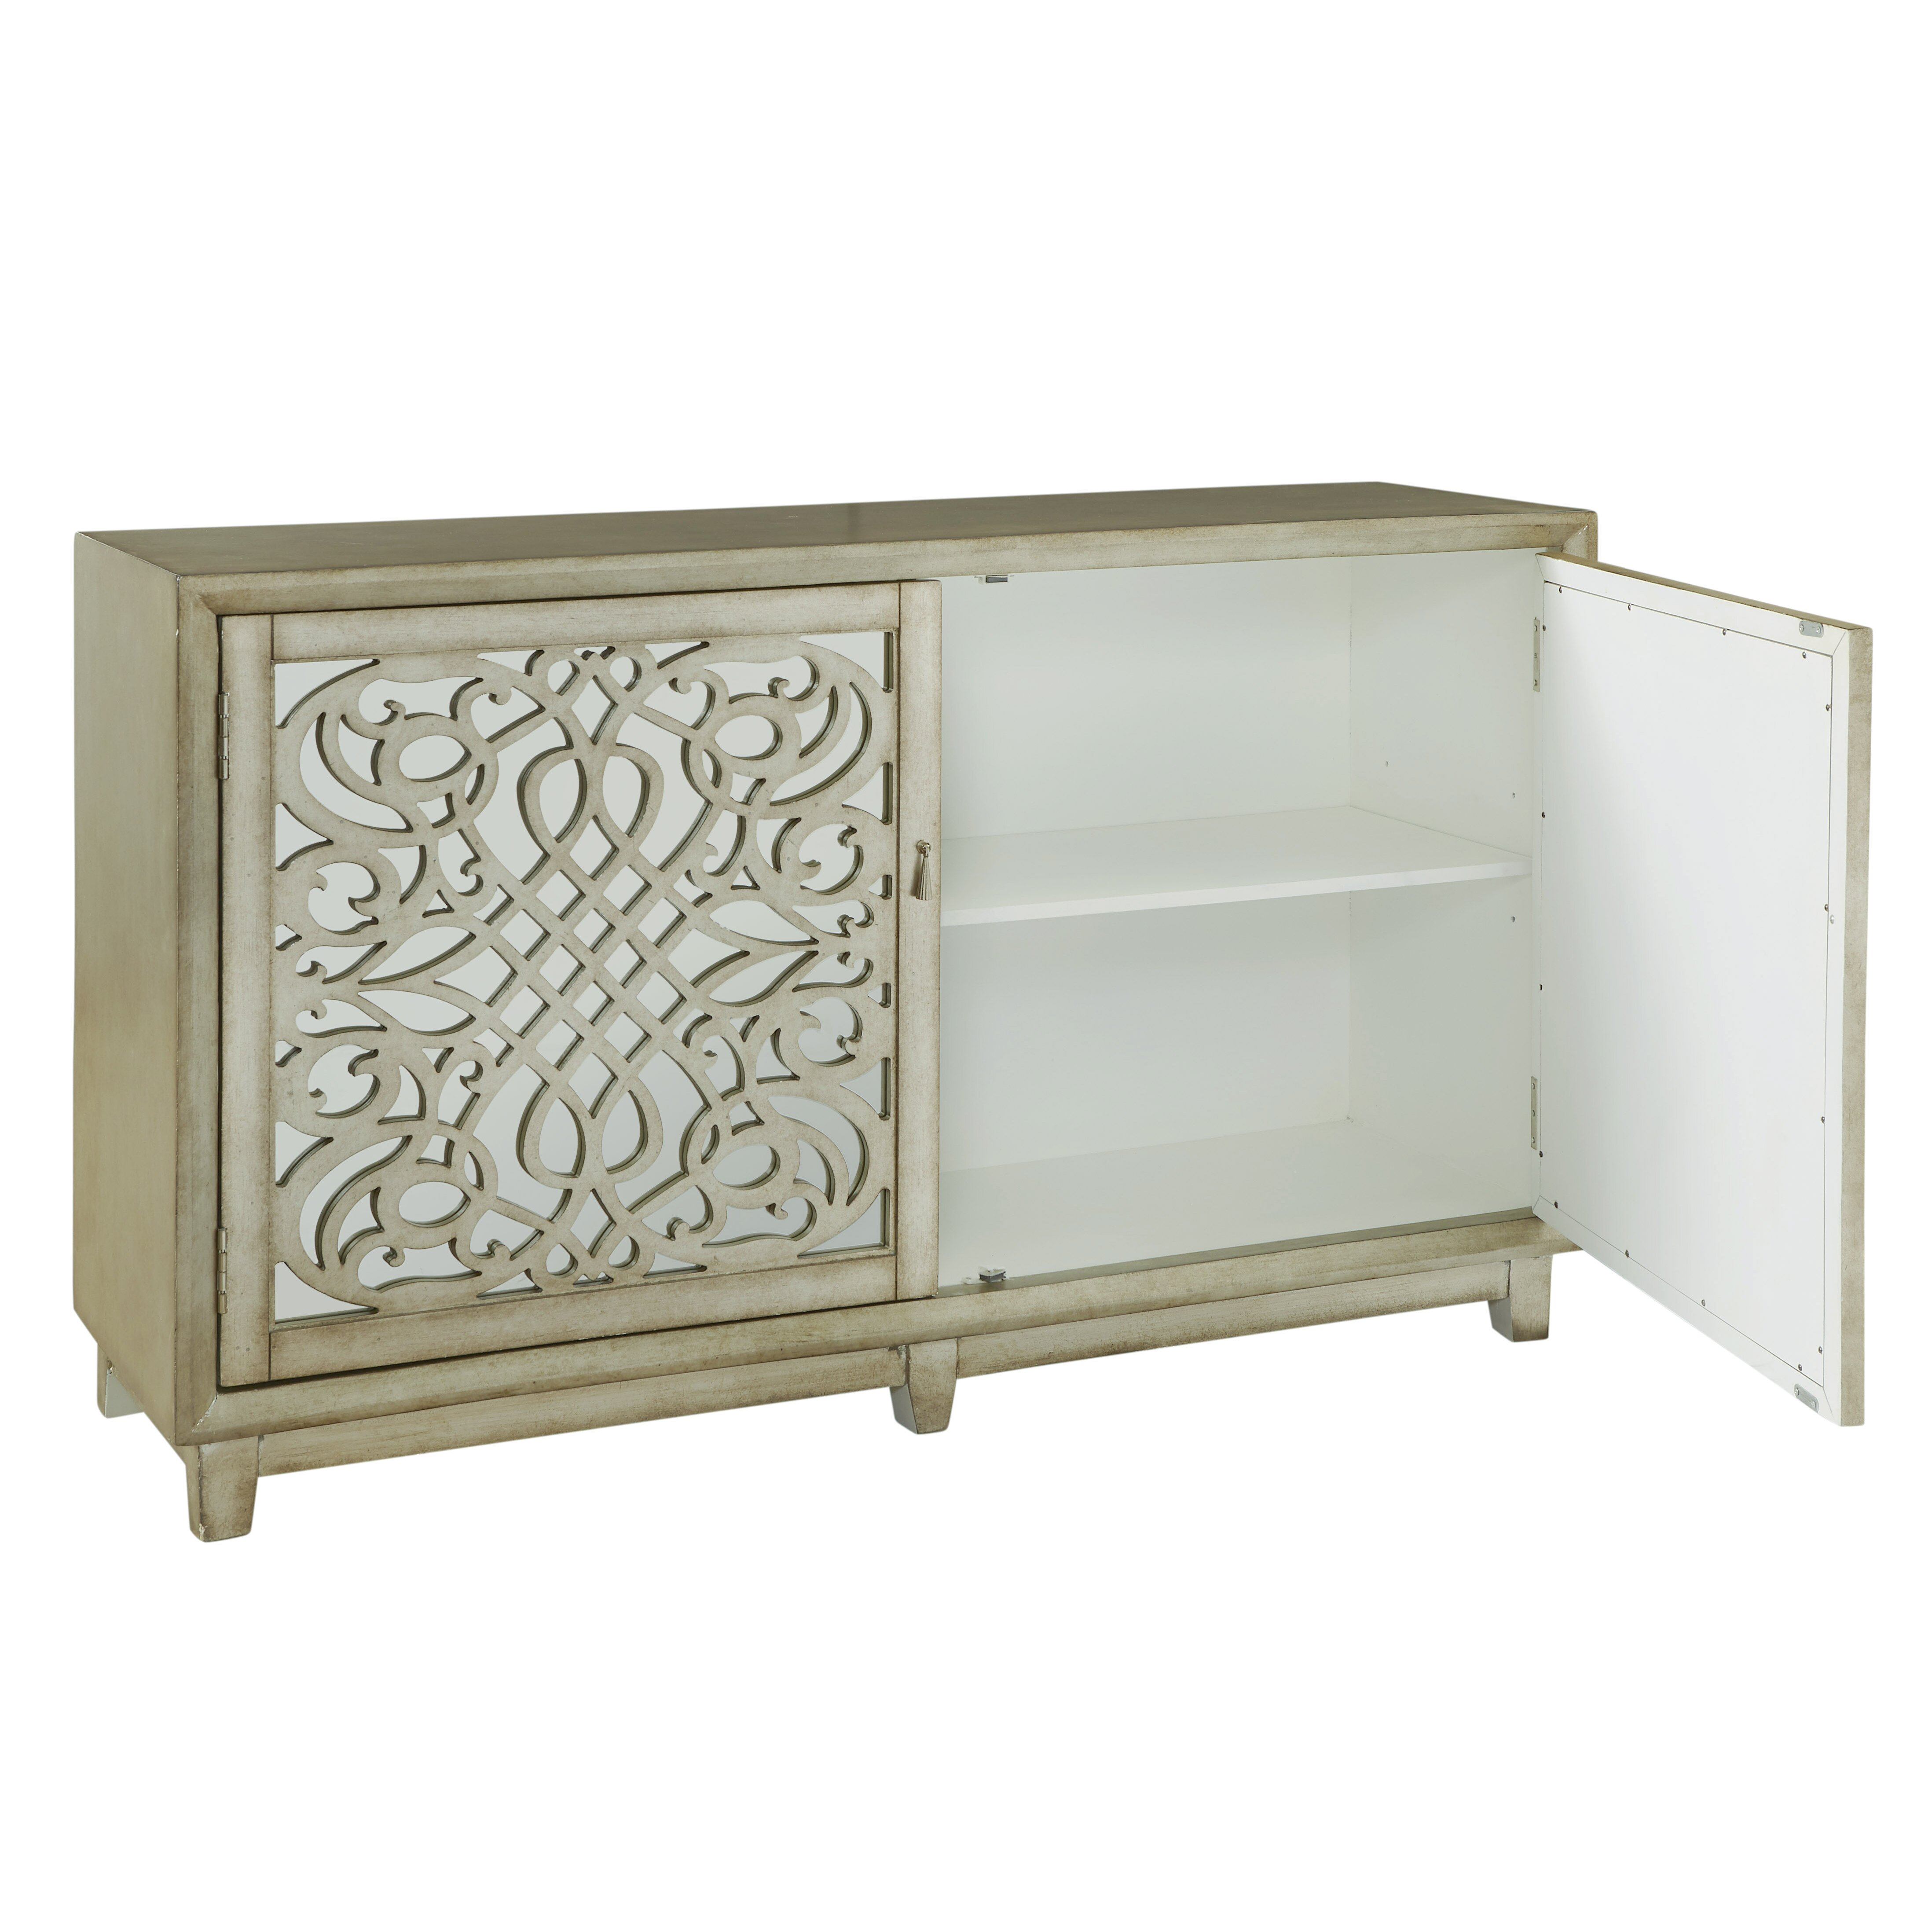 Urban Accents Furniture The Most Important And The Veritable